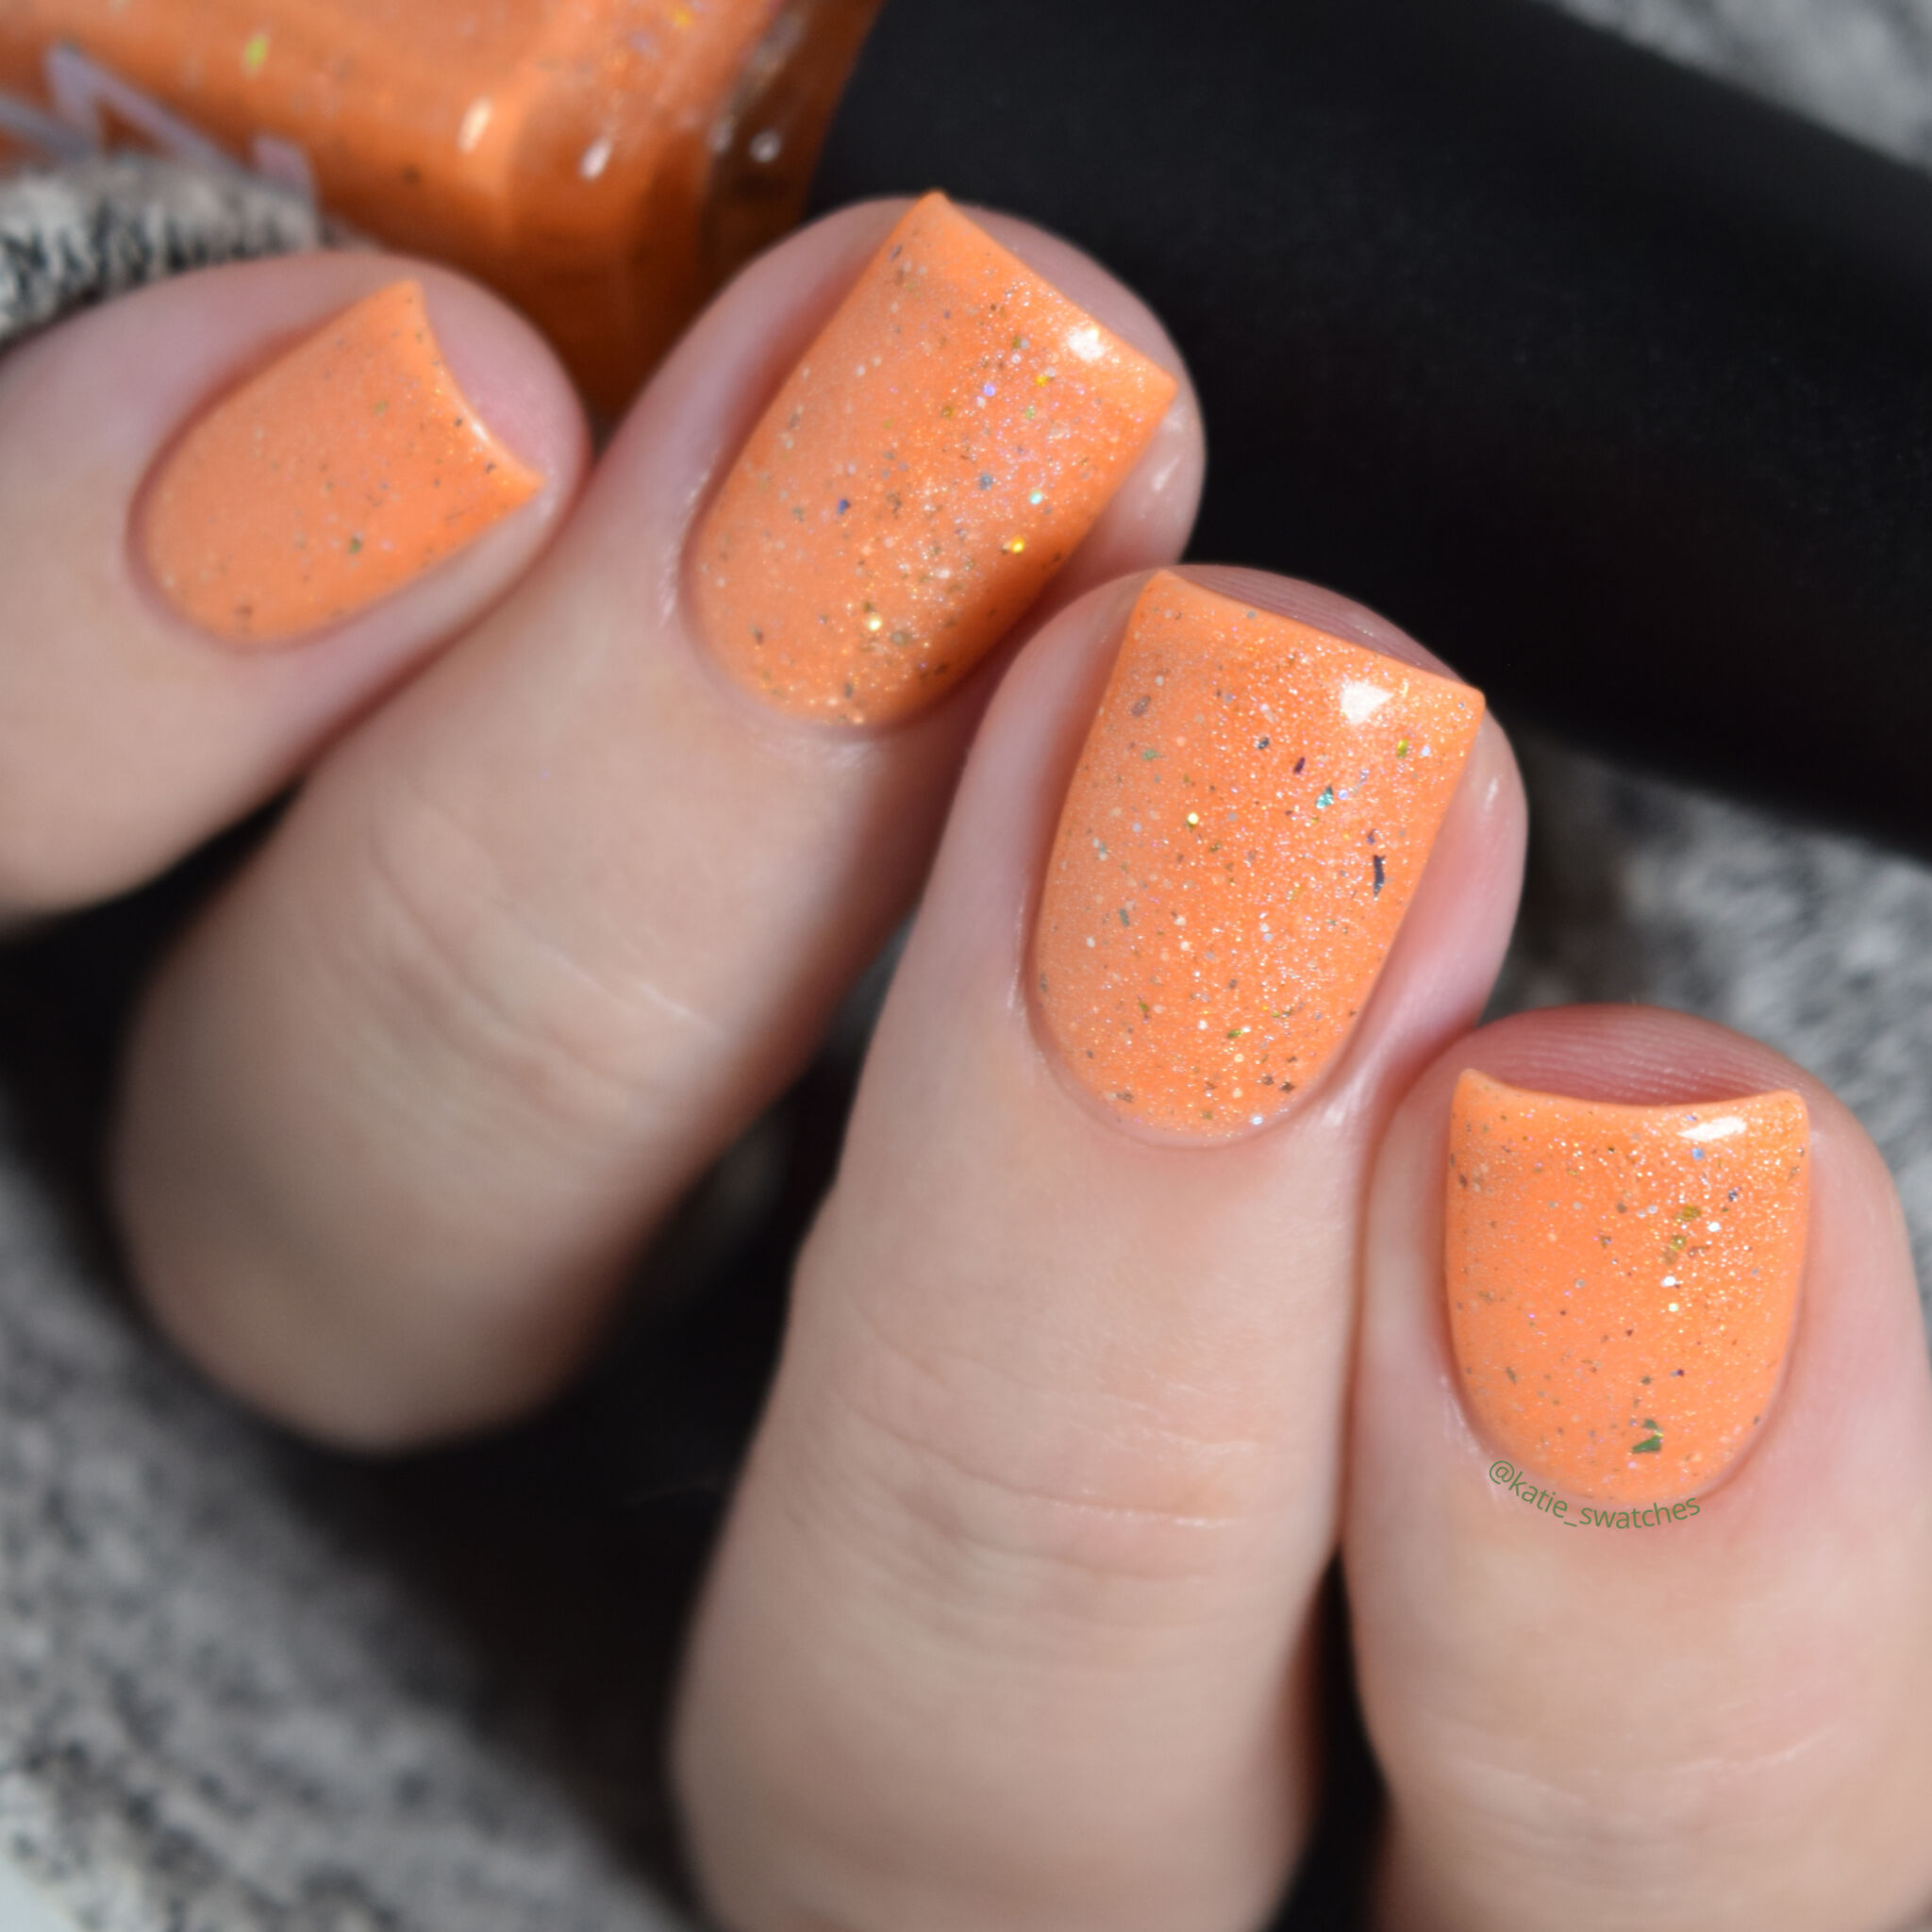 Zombie Claw Polish - Canadian Zombie orange jelly holographic nail polish swatch - Indie Expo Canada IEC VIP Bag 2019 Exclusive